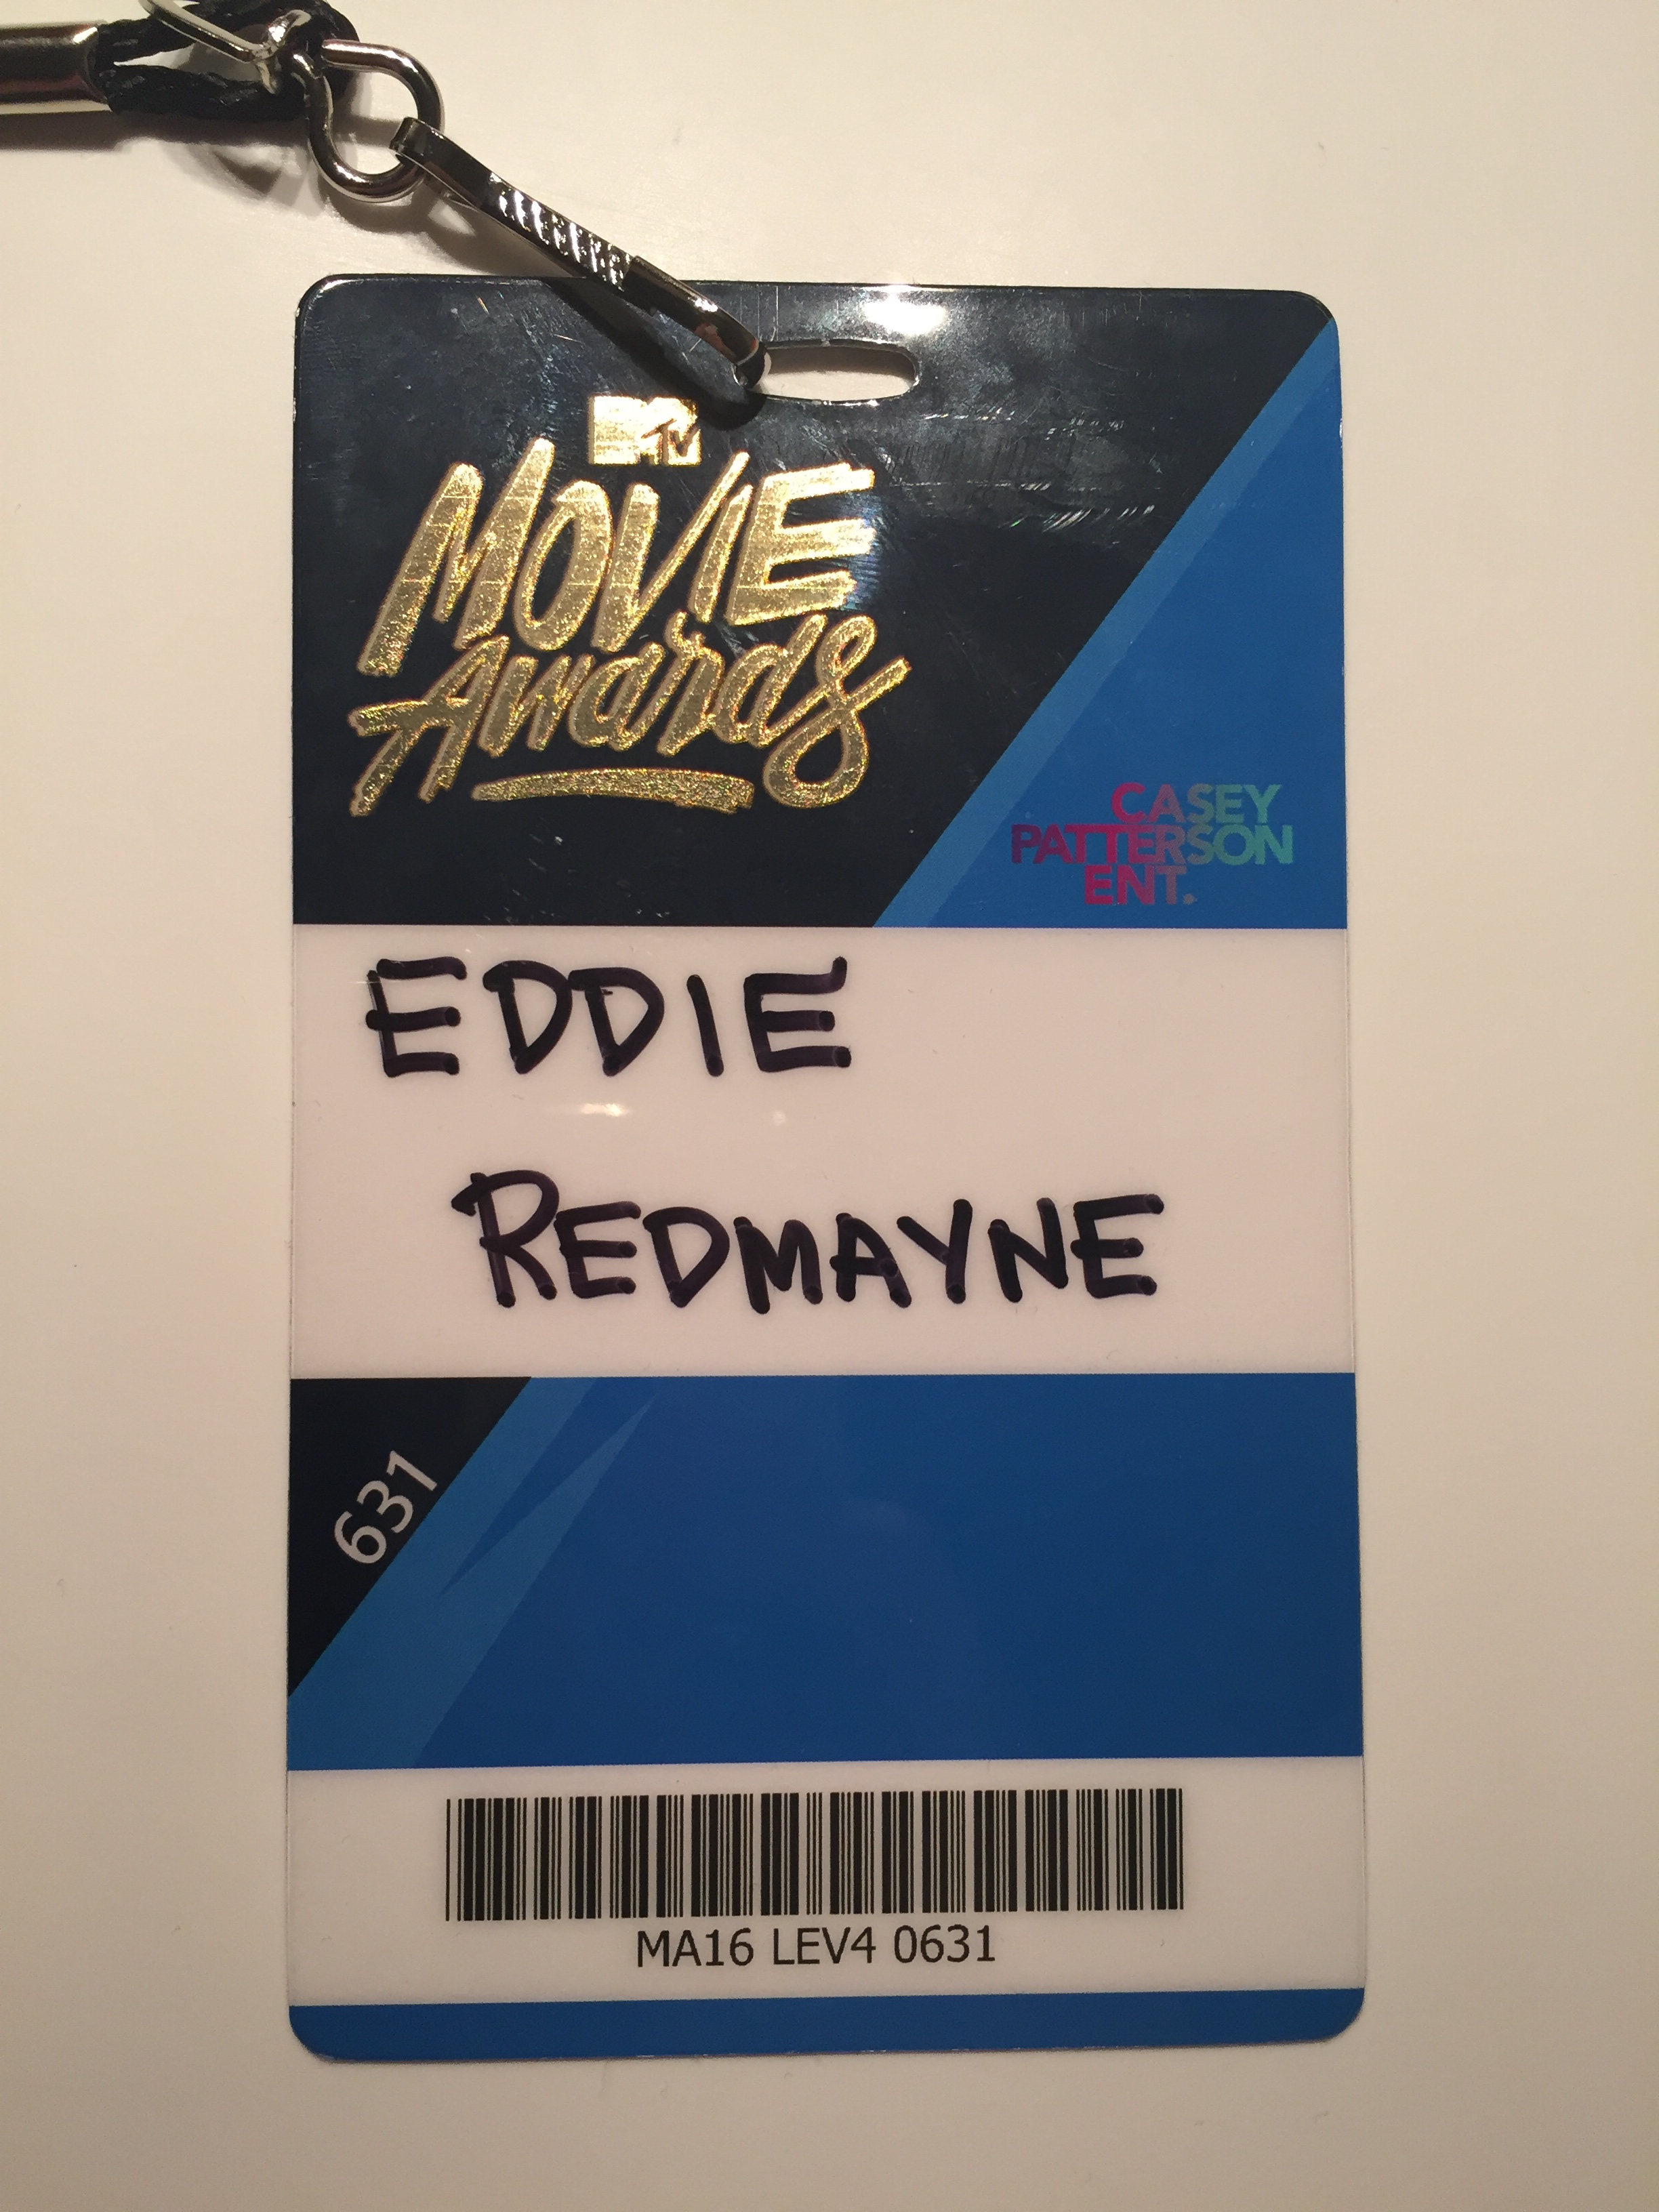 Eddie's MTV Movie Awards pass